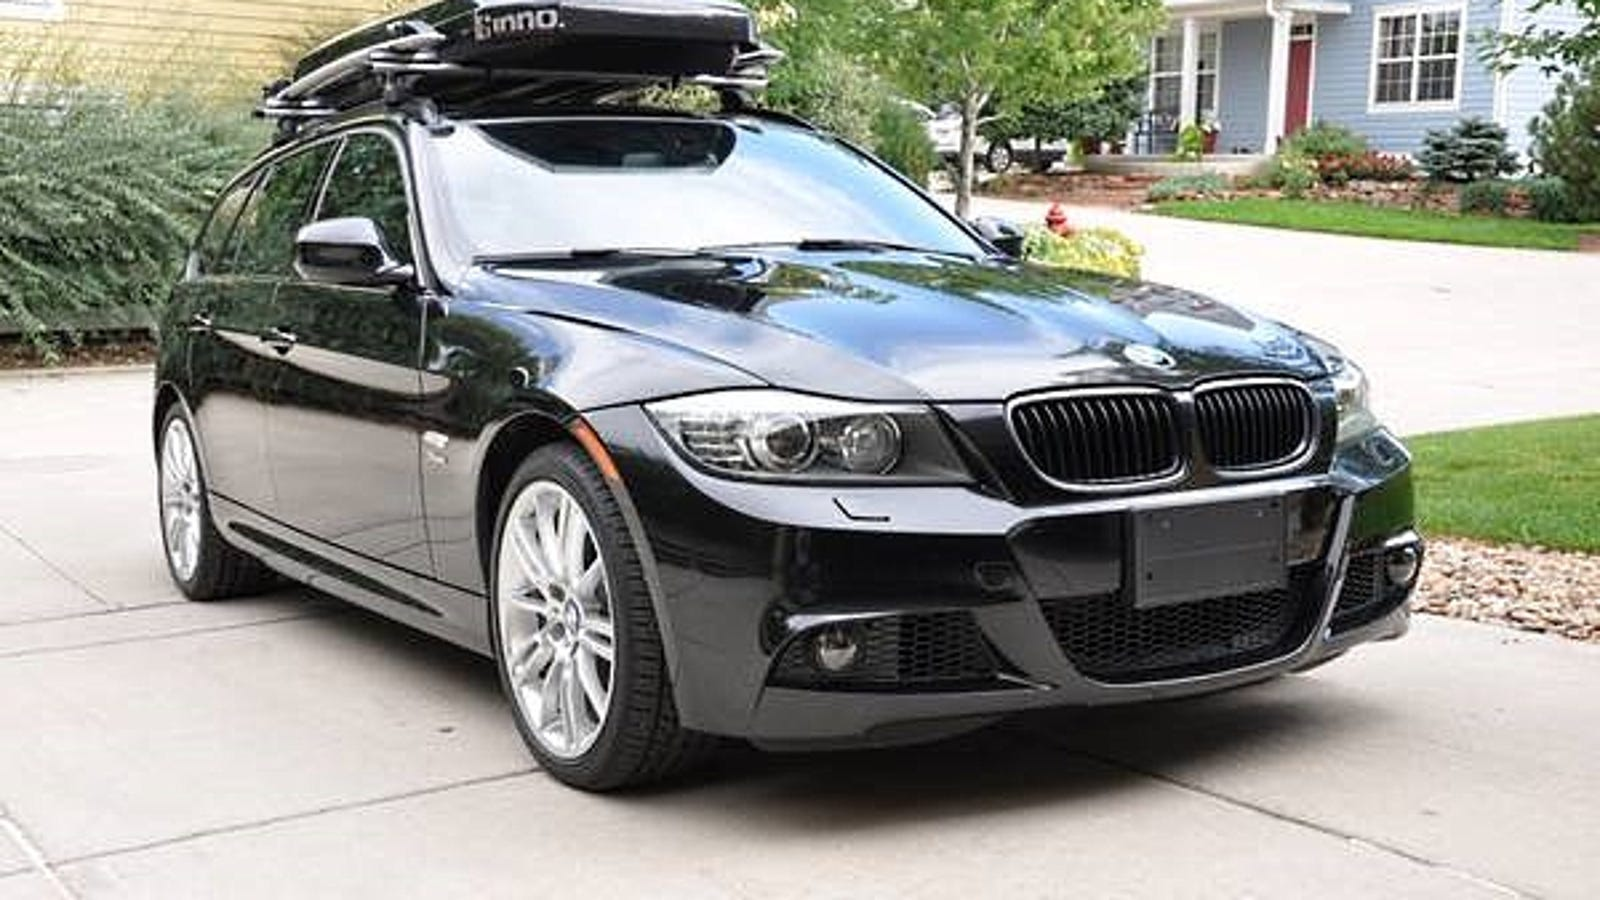 Bmw 328i Wagon >> 2011 BMW 328i Wagon M-Sport: The Unicorn